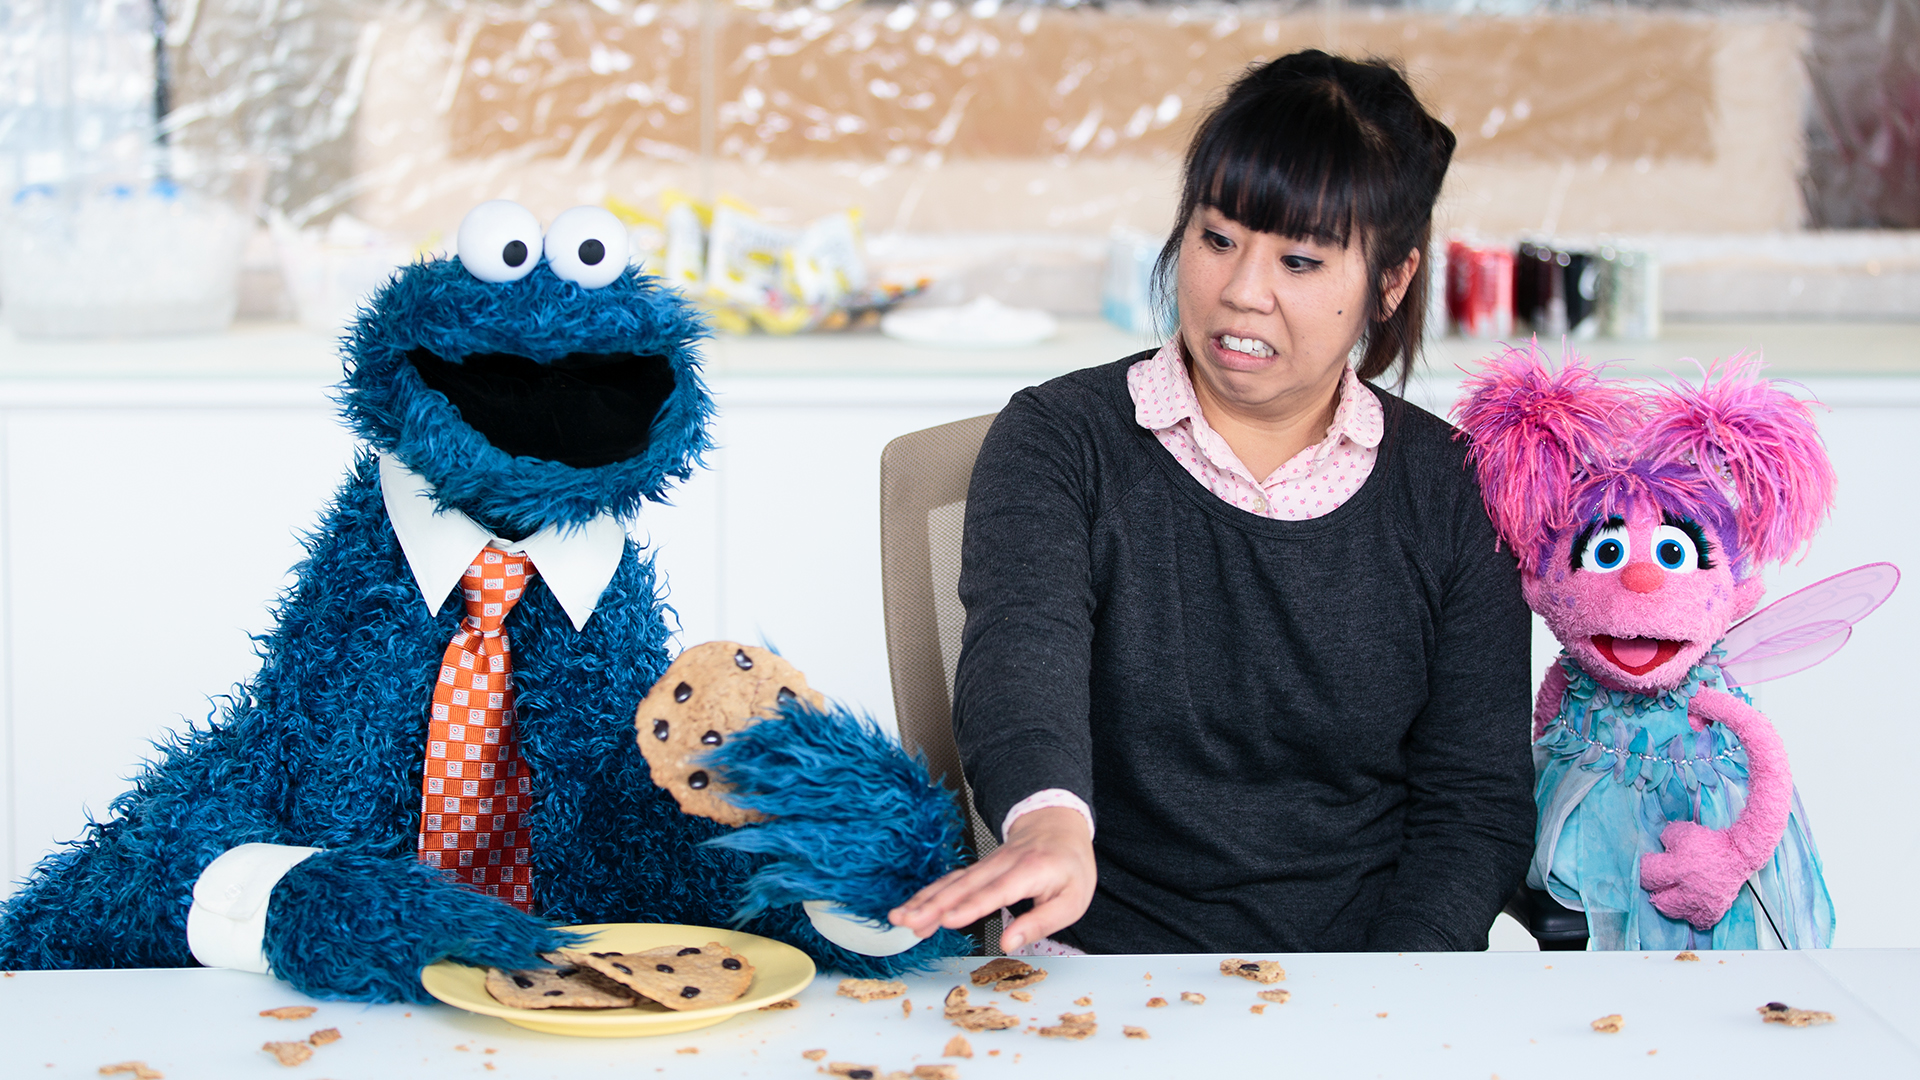 The Sesame Street Muppets Spread Kindness The Outtakes